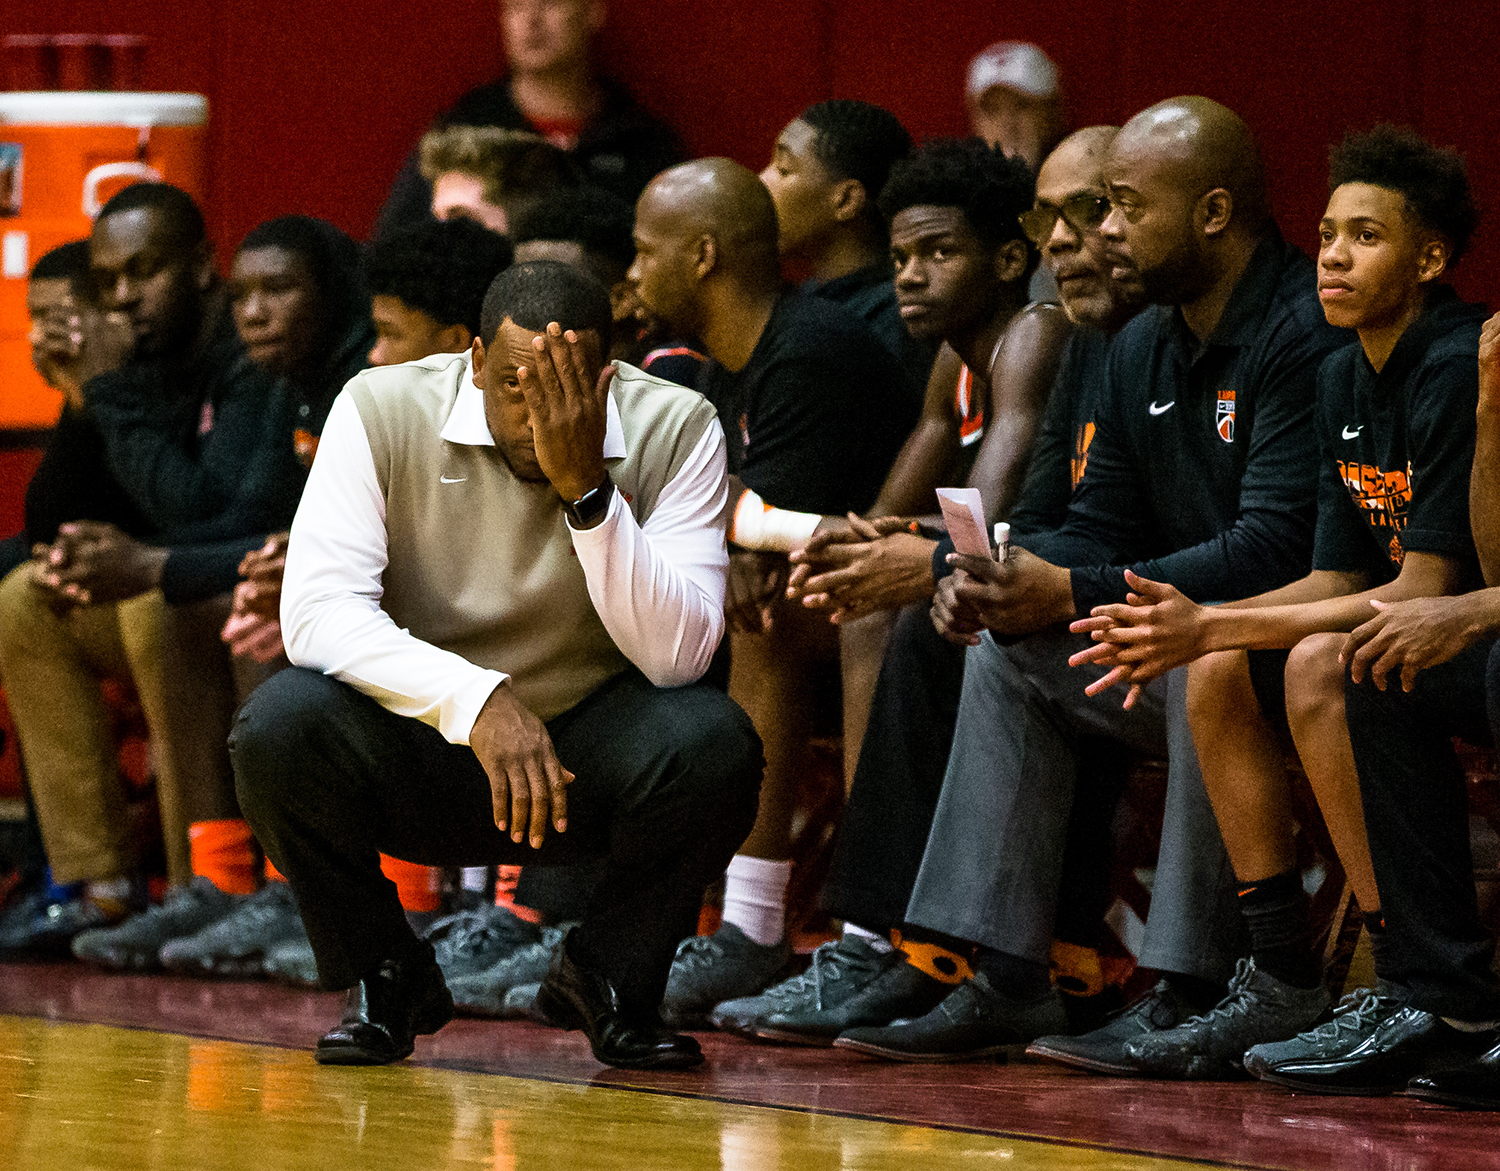 Lanphier boys basketball head coach Blake Turner reacts as the Lions take on Glenwood in the first half at Glenwood High School, Friday, Jan. 4, 2019, in Chatham, Ill. [Justin L. Fowler/The State Journal-Register]